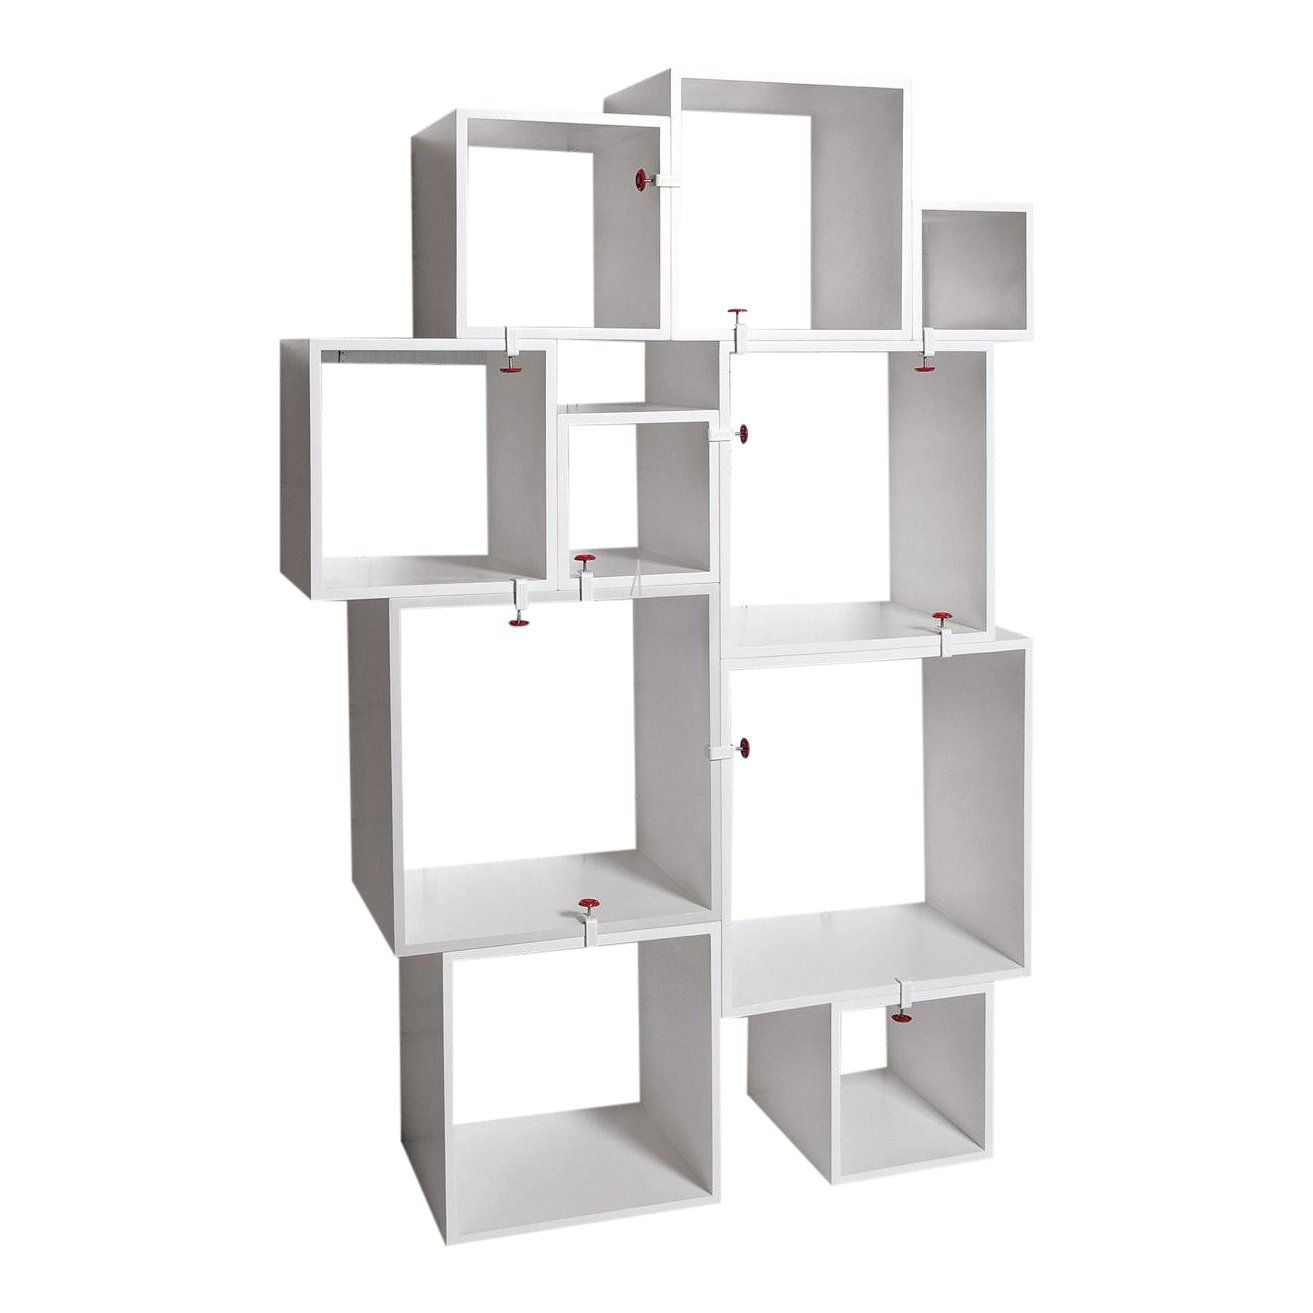 Modern Seletti Assemblage Nesting Modular Bookcase Wall Unit 10 Pieces In 2020 Bookcase Wall Unit Contemporary Shelving Bookcase Wall